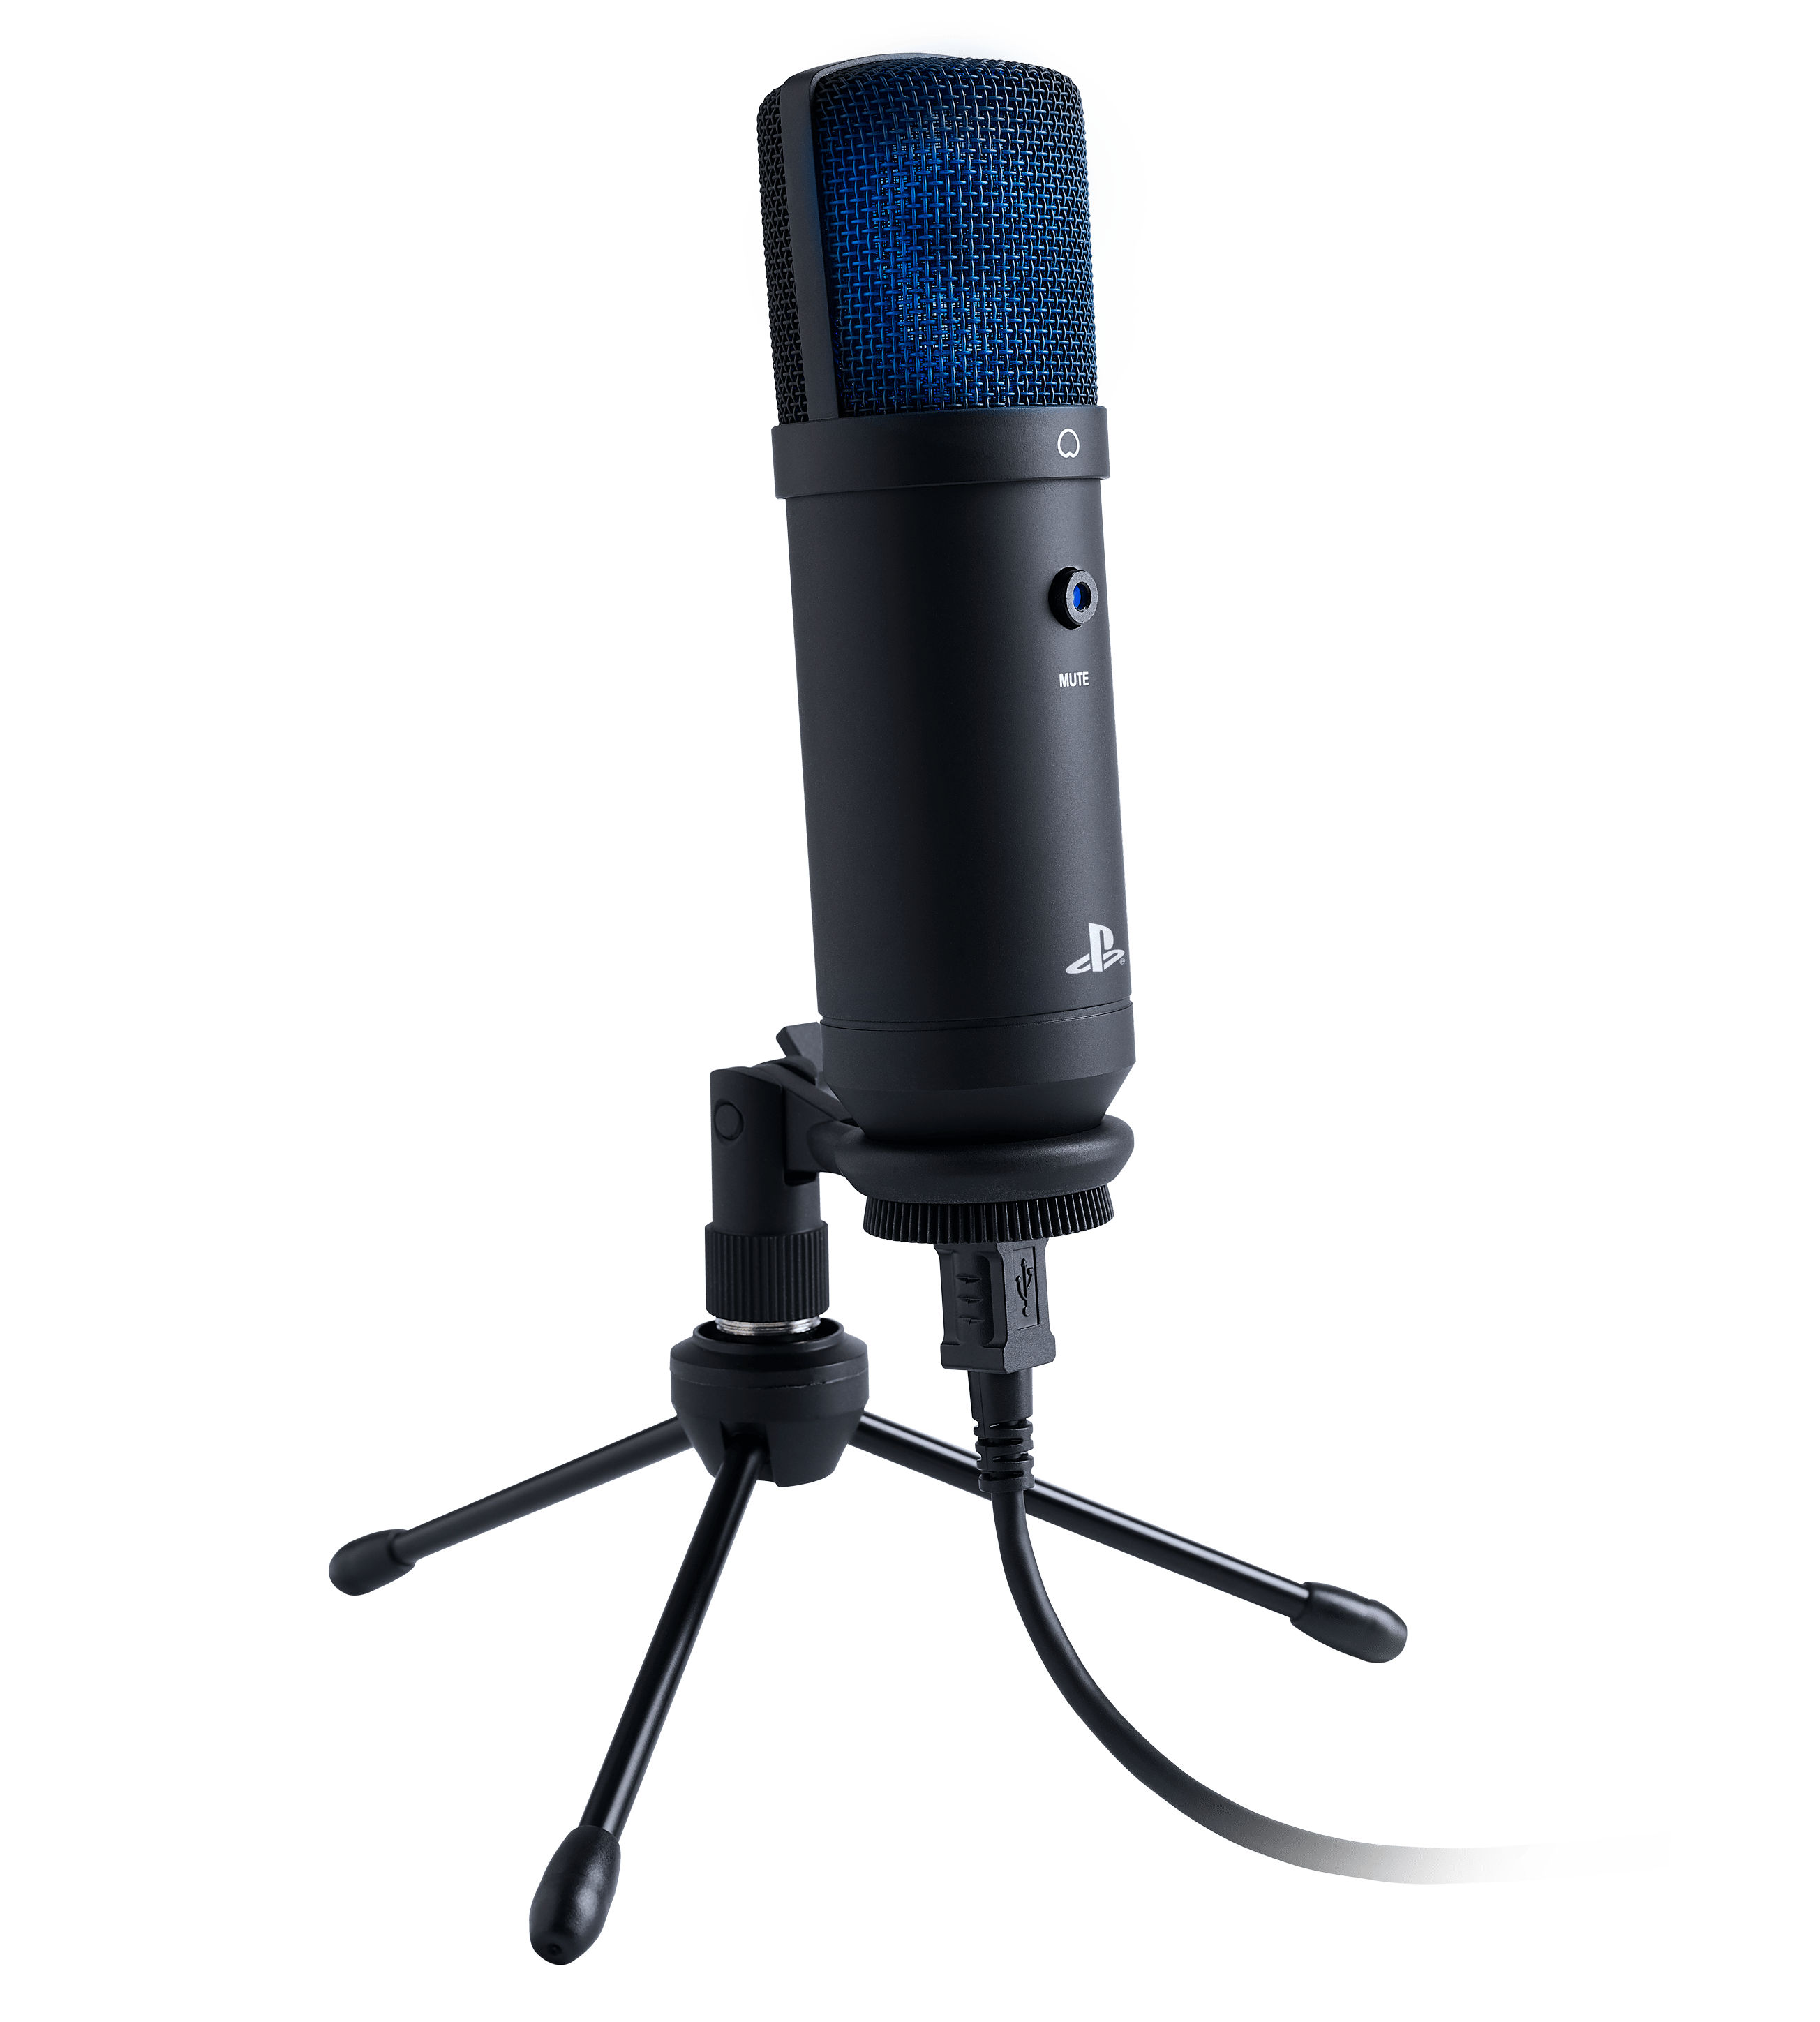 NACON launch new licensed PS4 streaming mic and camo controller